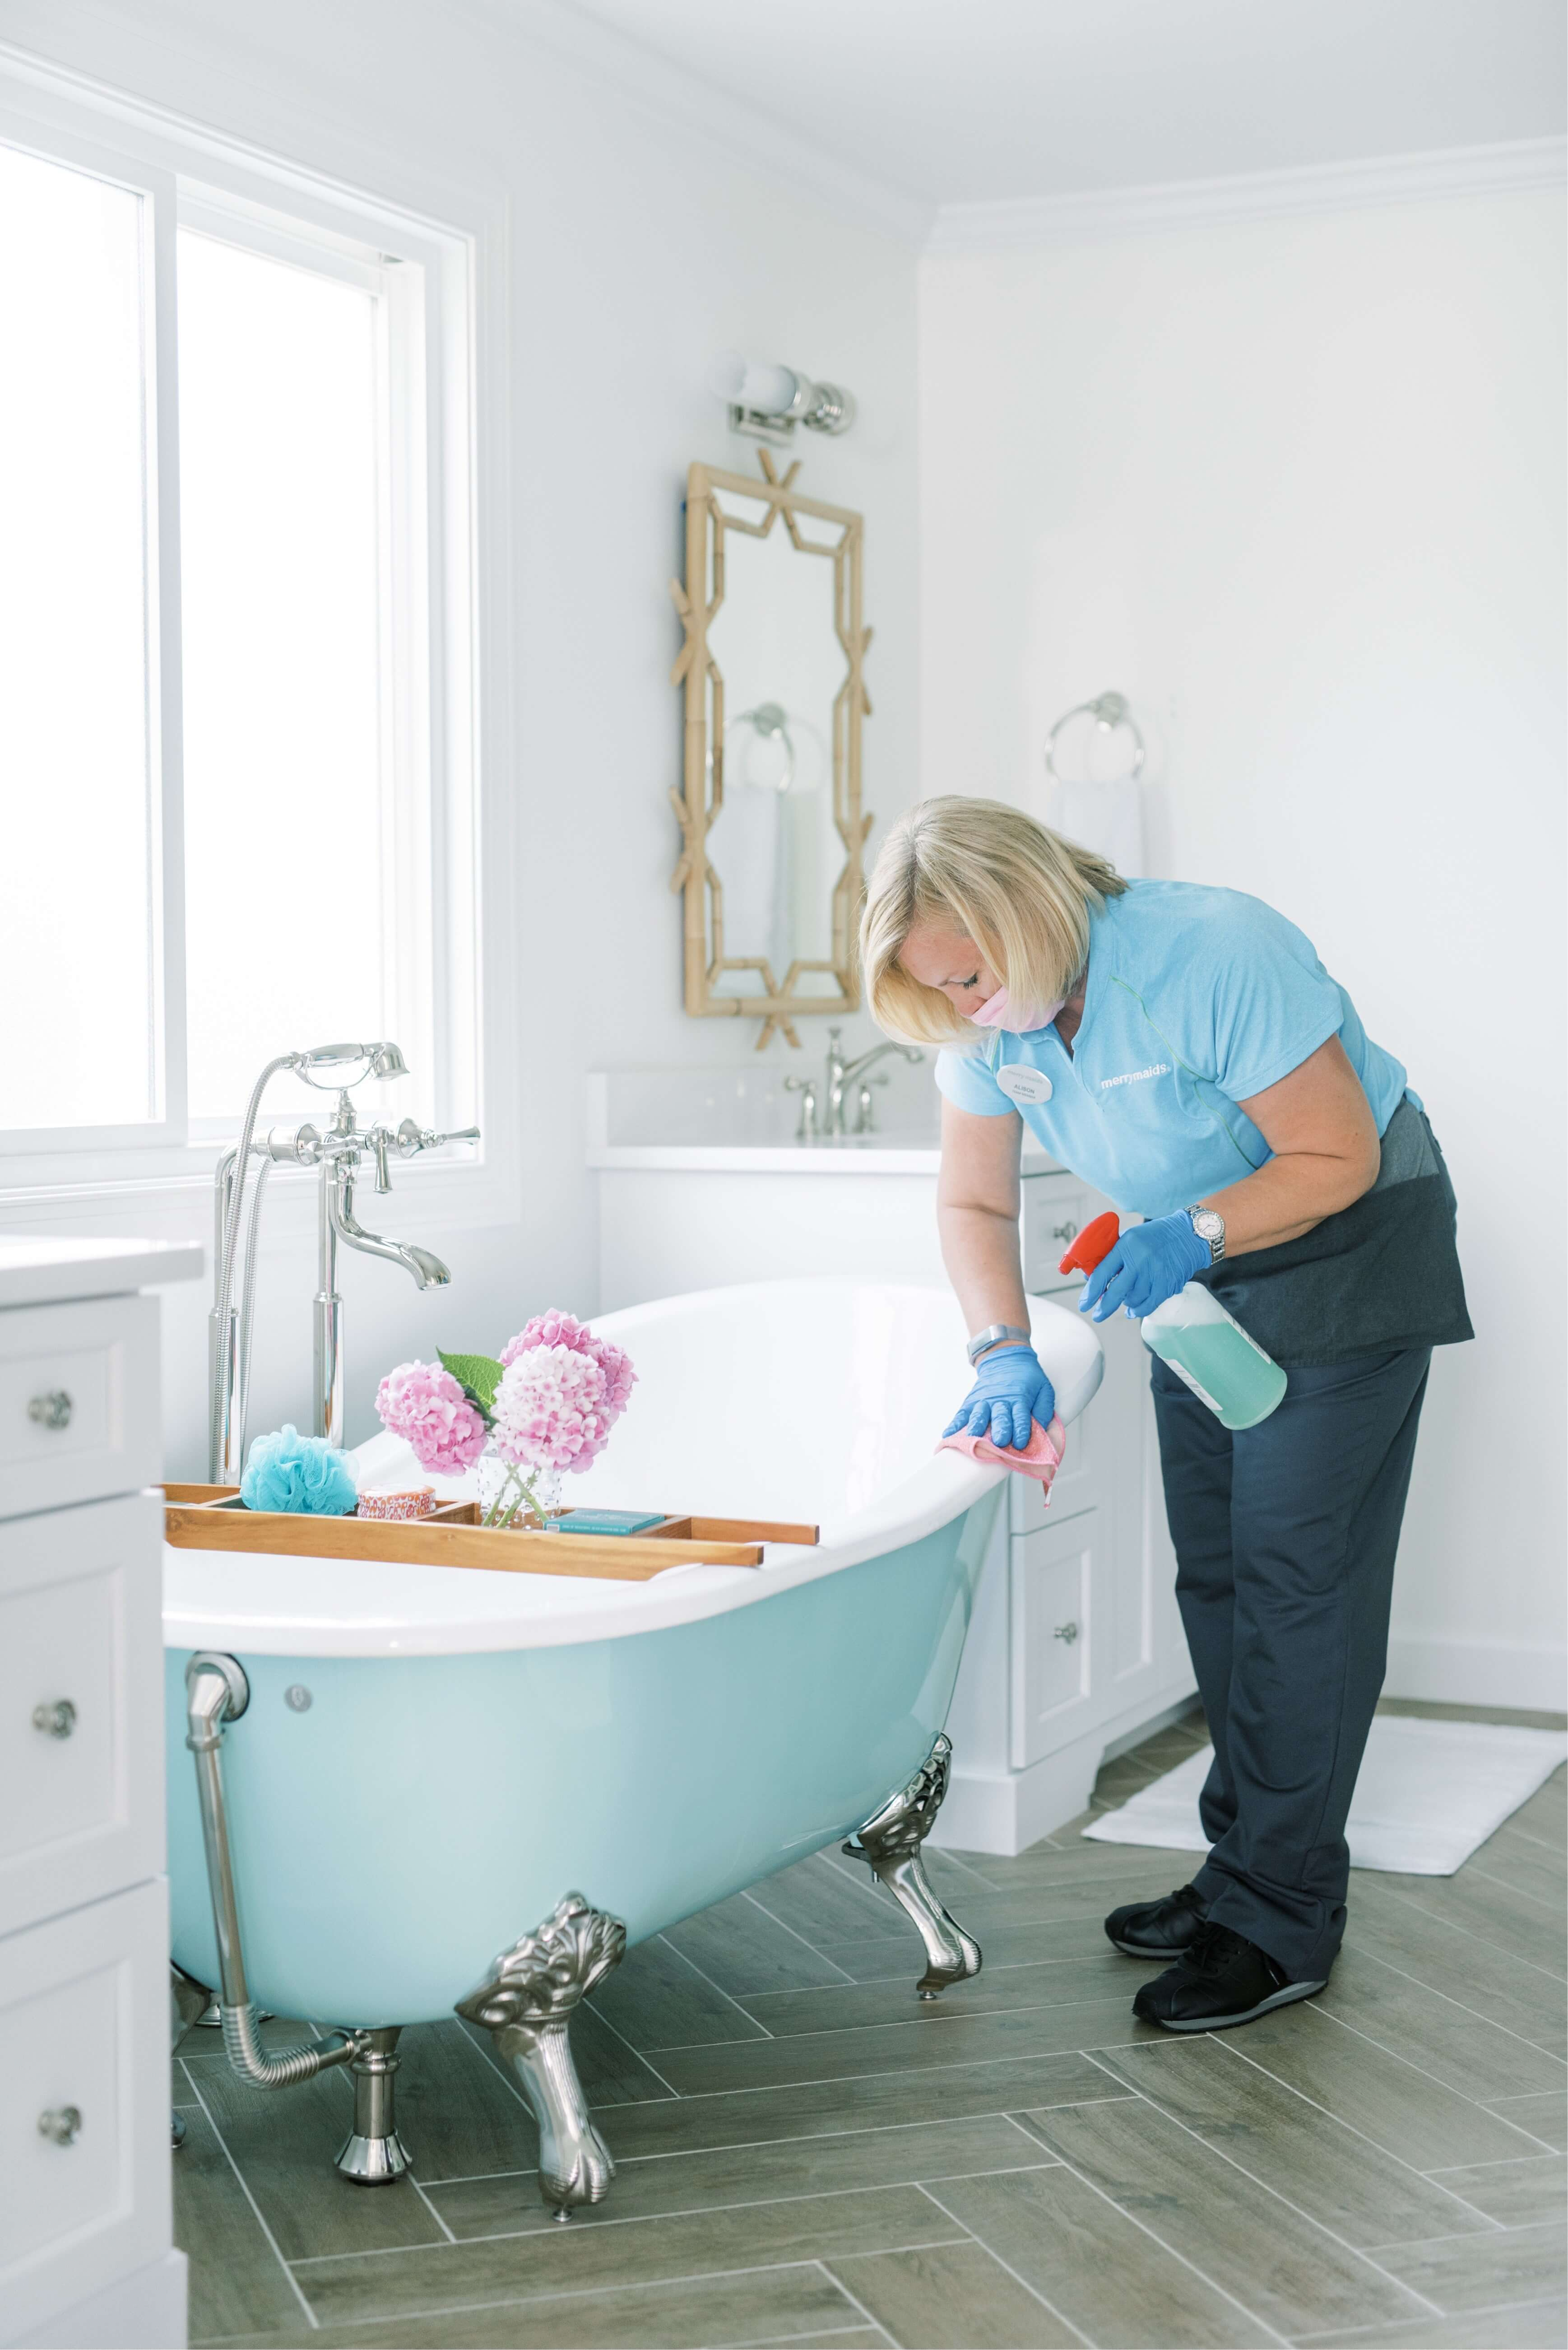 Merry Maids team member cleaning bathtub